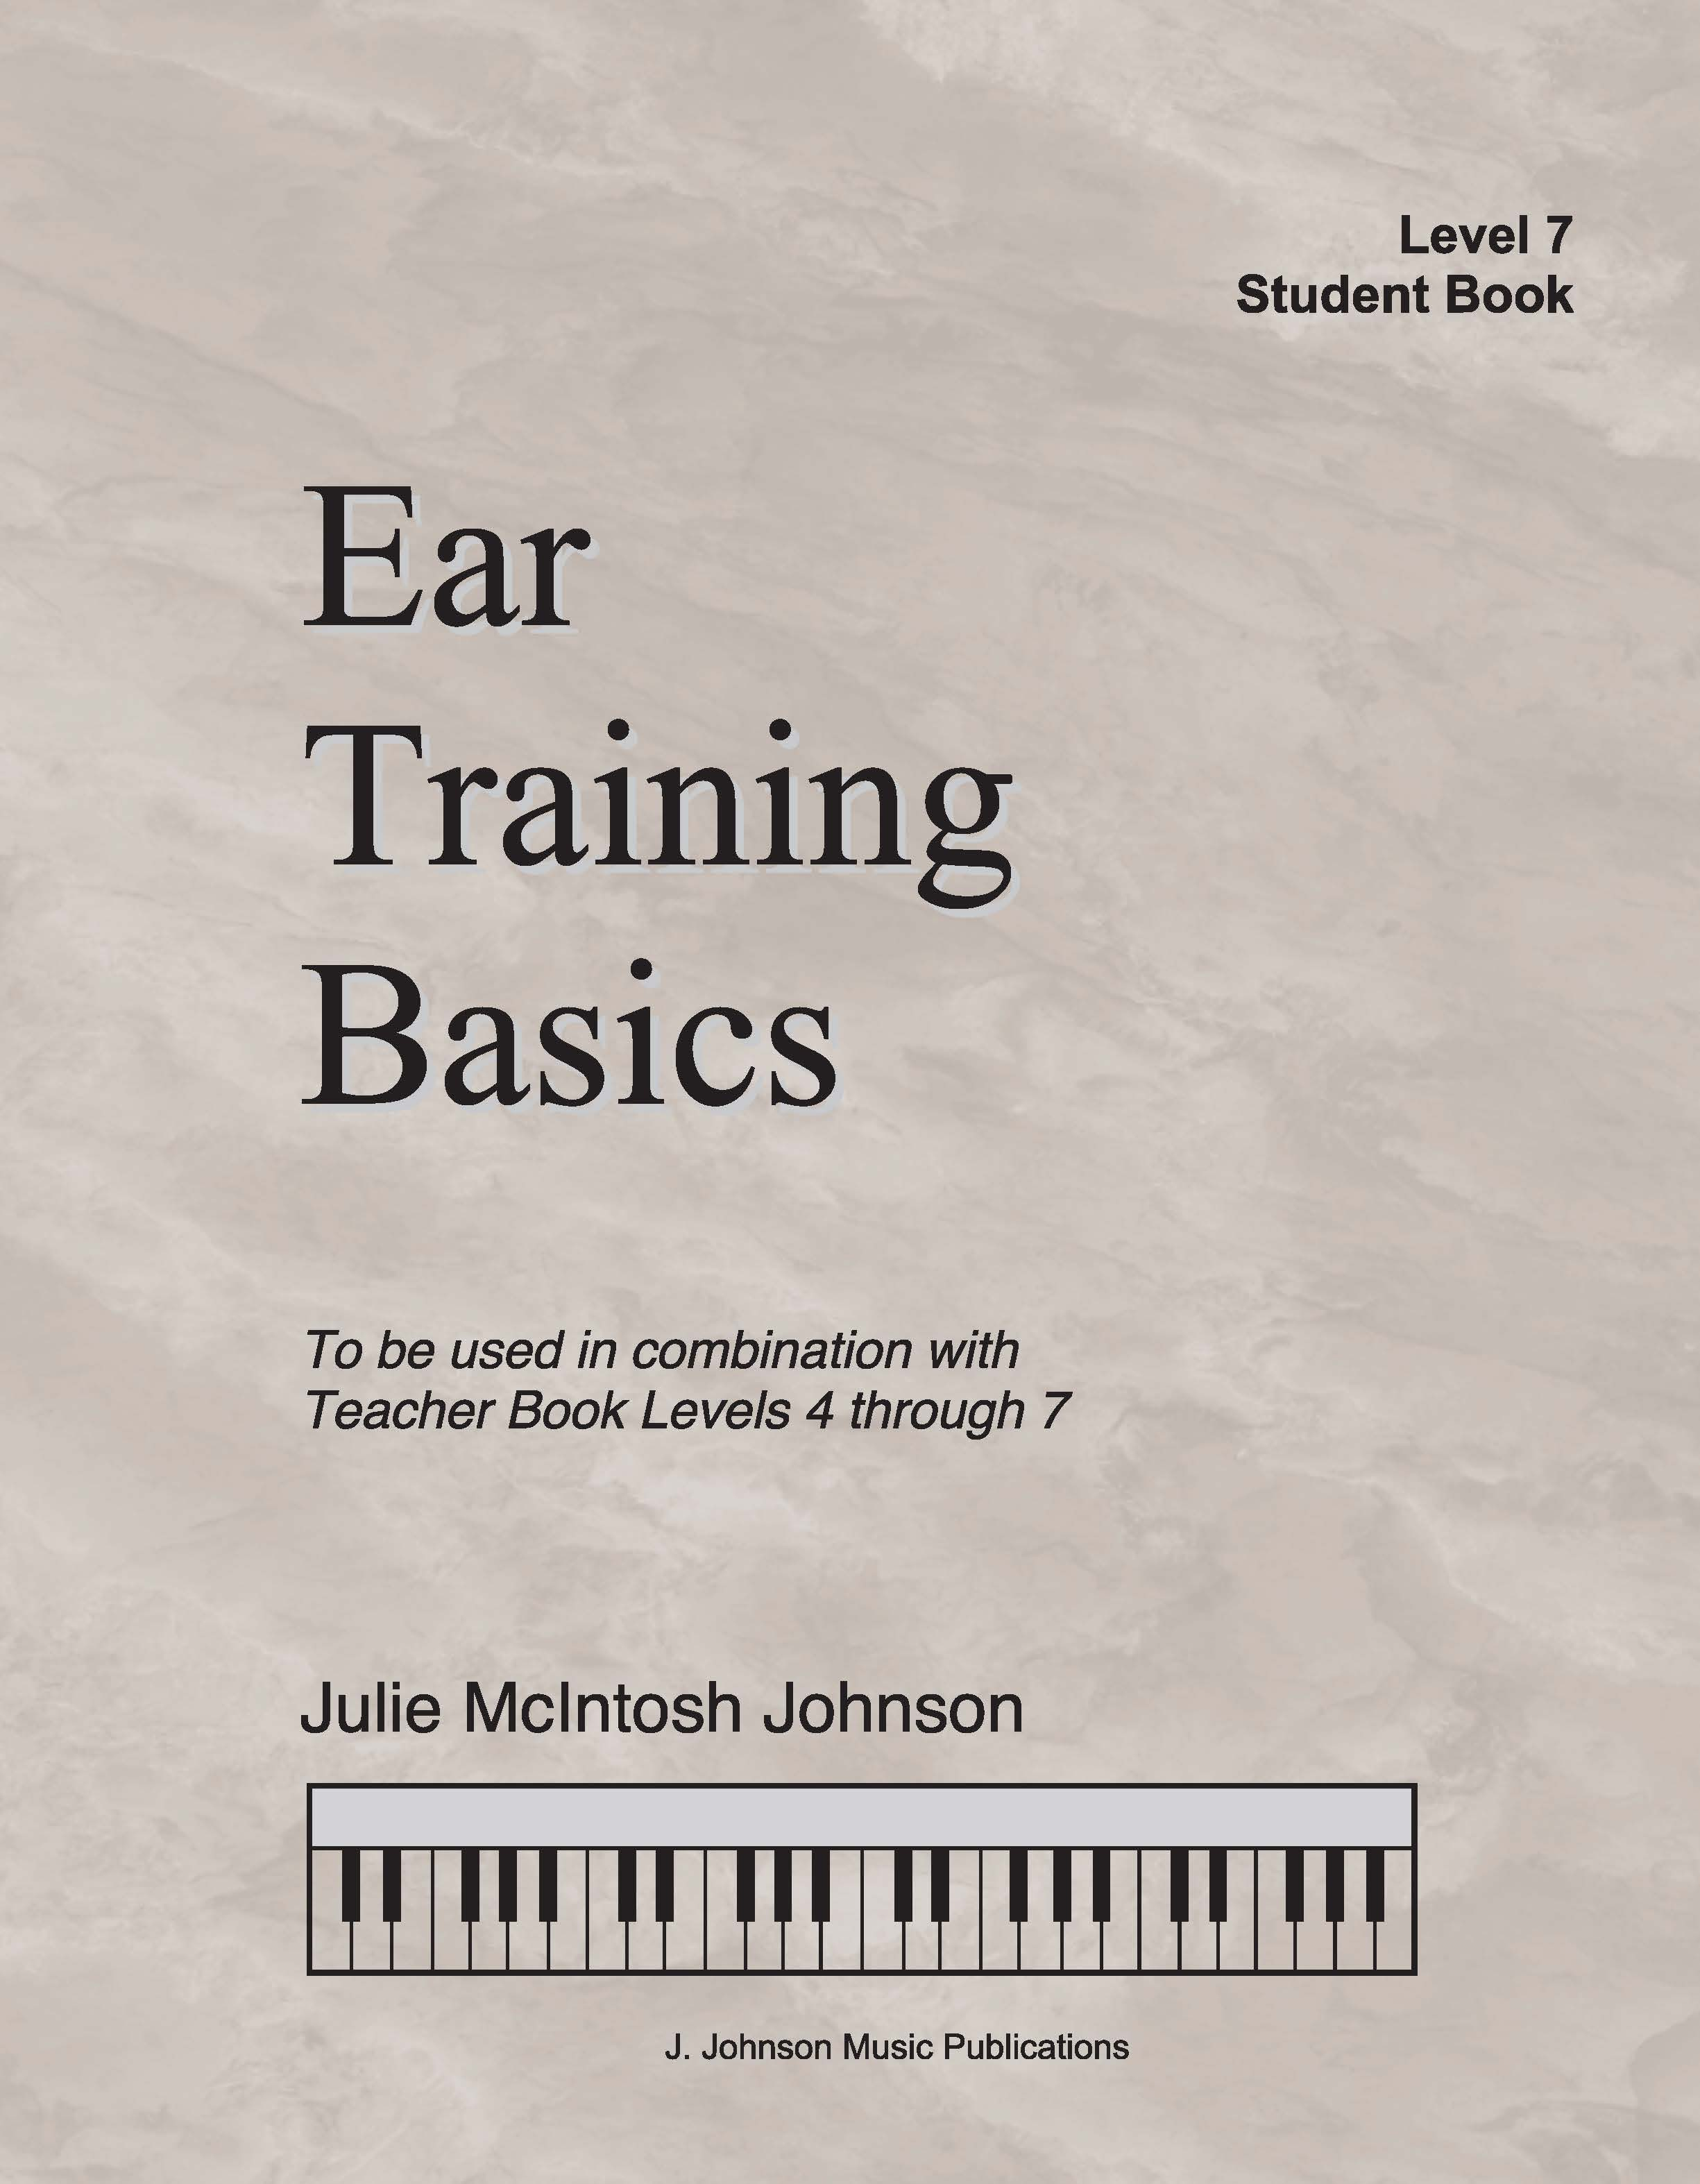 Ear Training Basics Level 7